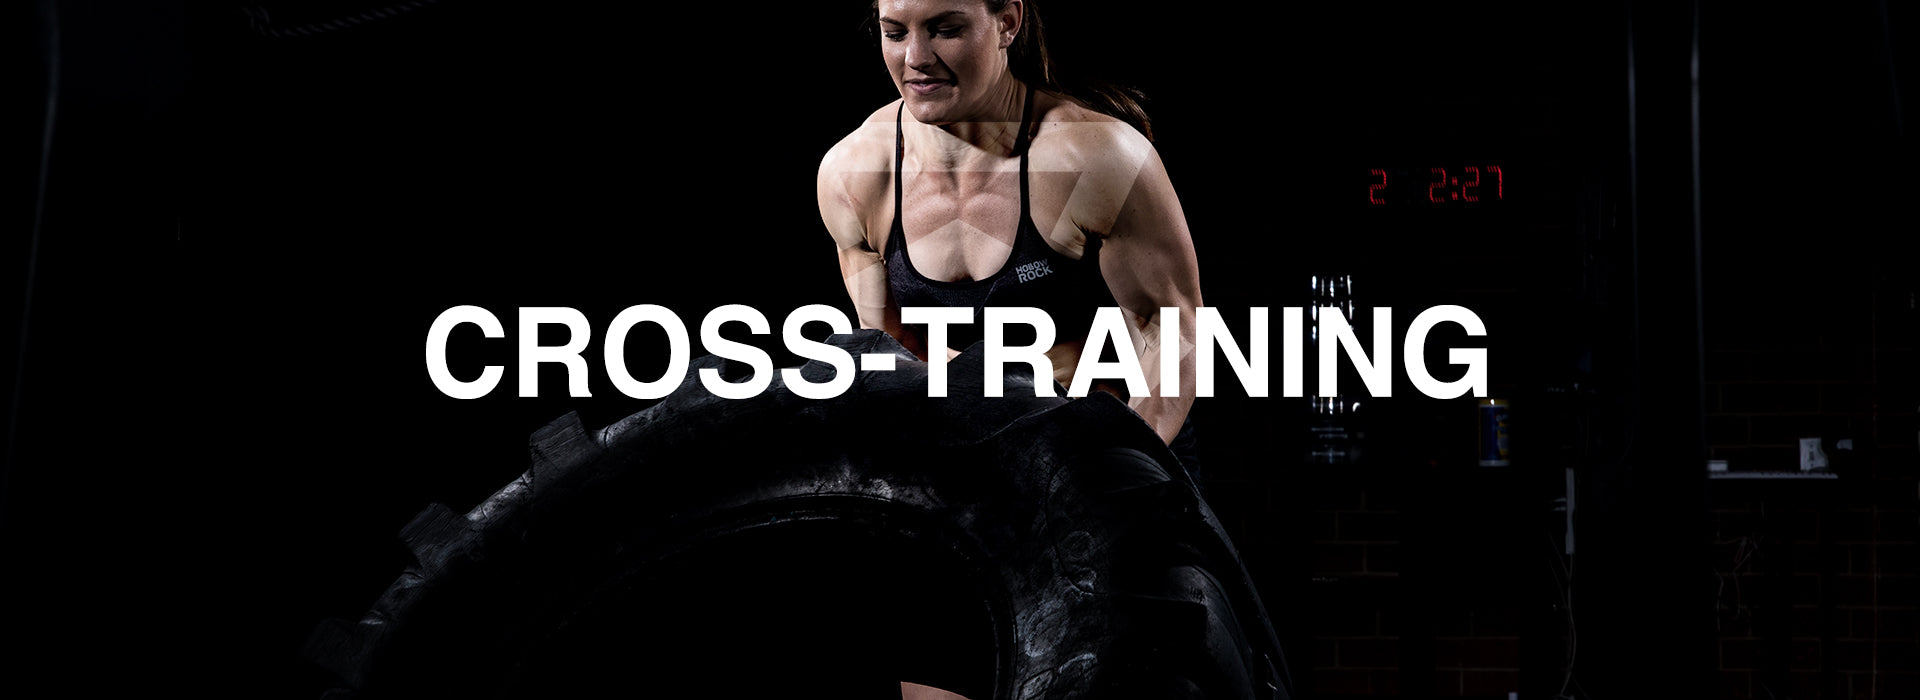 Women-Crosstraining-functionalfitness-activewear